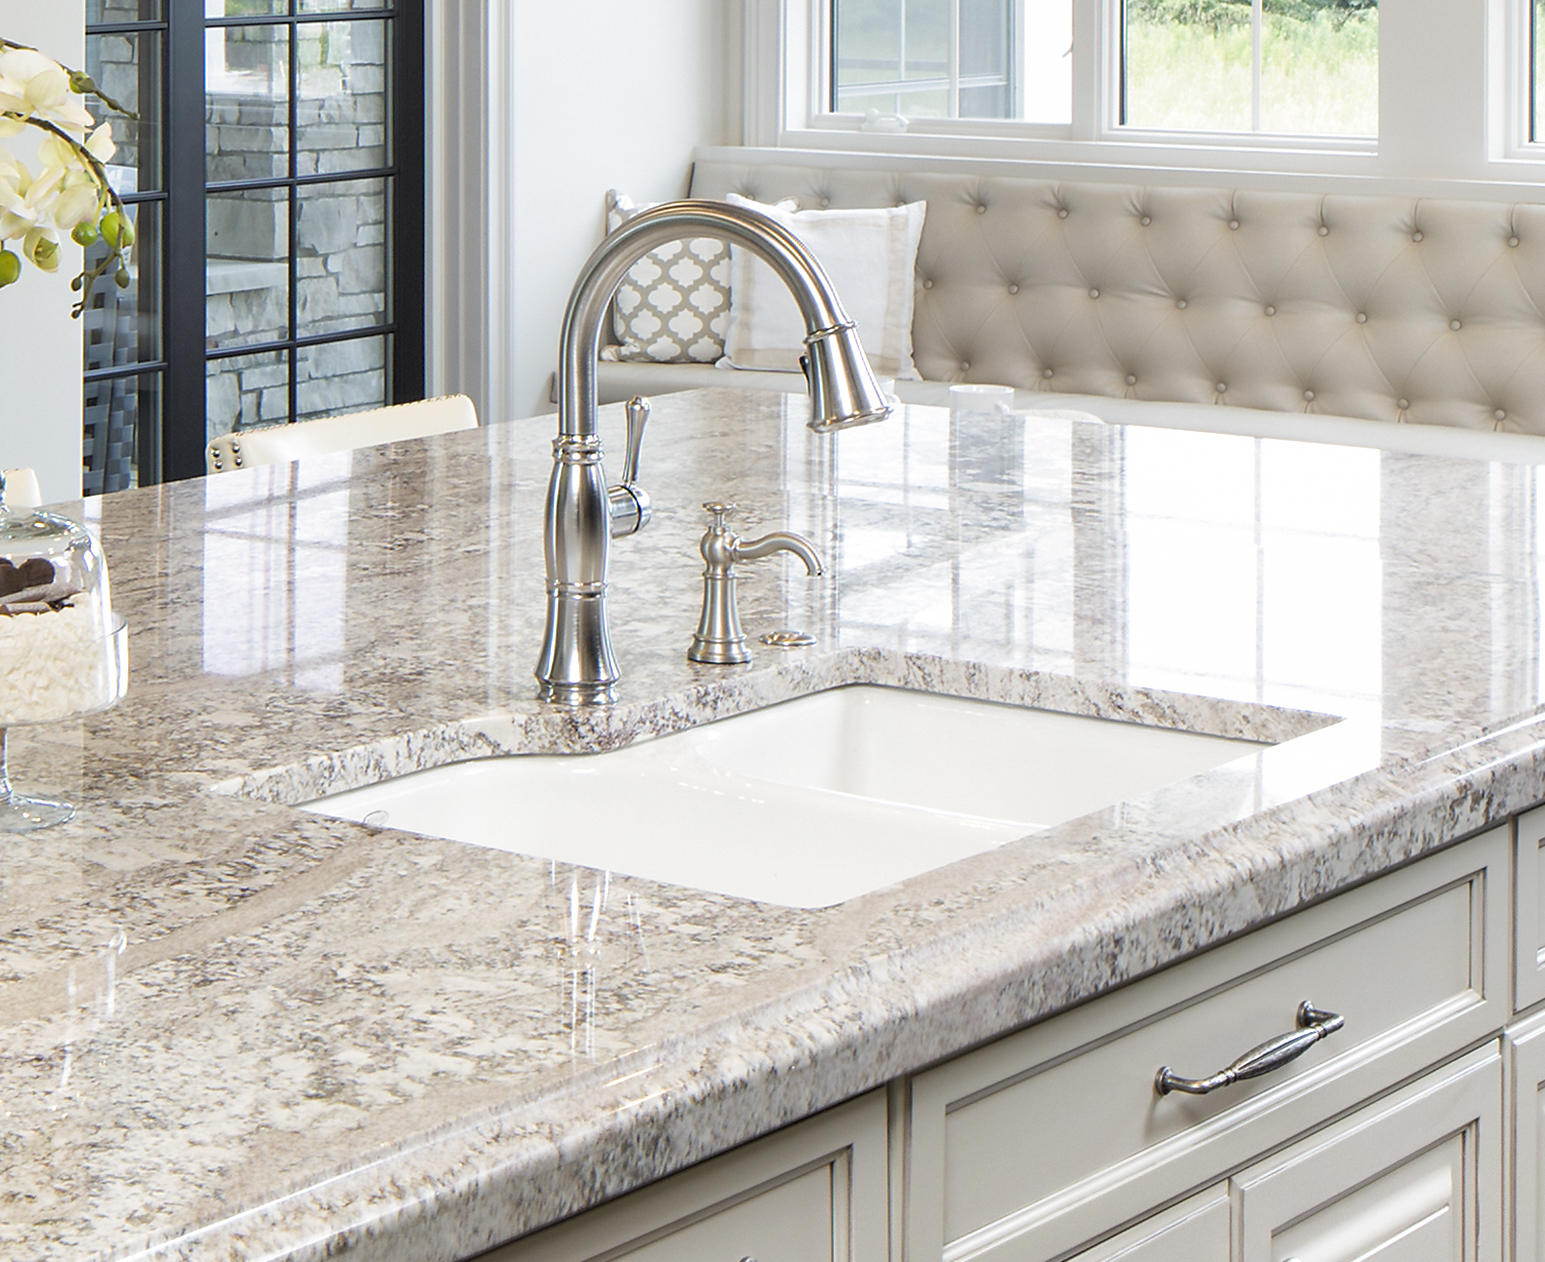 Kitchen Sink In Bathroom Sink options for granite countertops bathroom kitchen sinks kitchen sink set in granite countertop by cd granite minneapolis mn workwithnaturefo